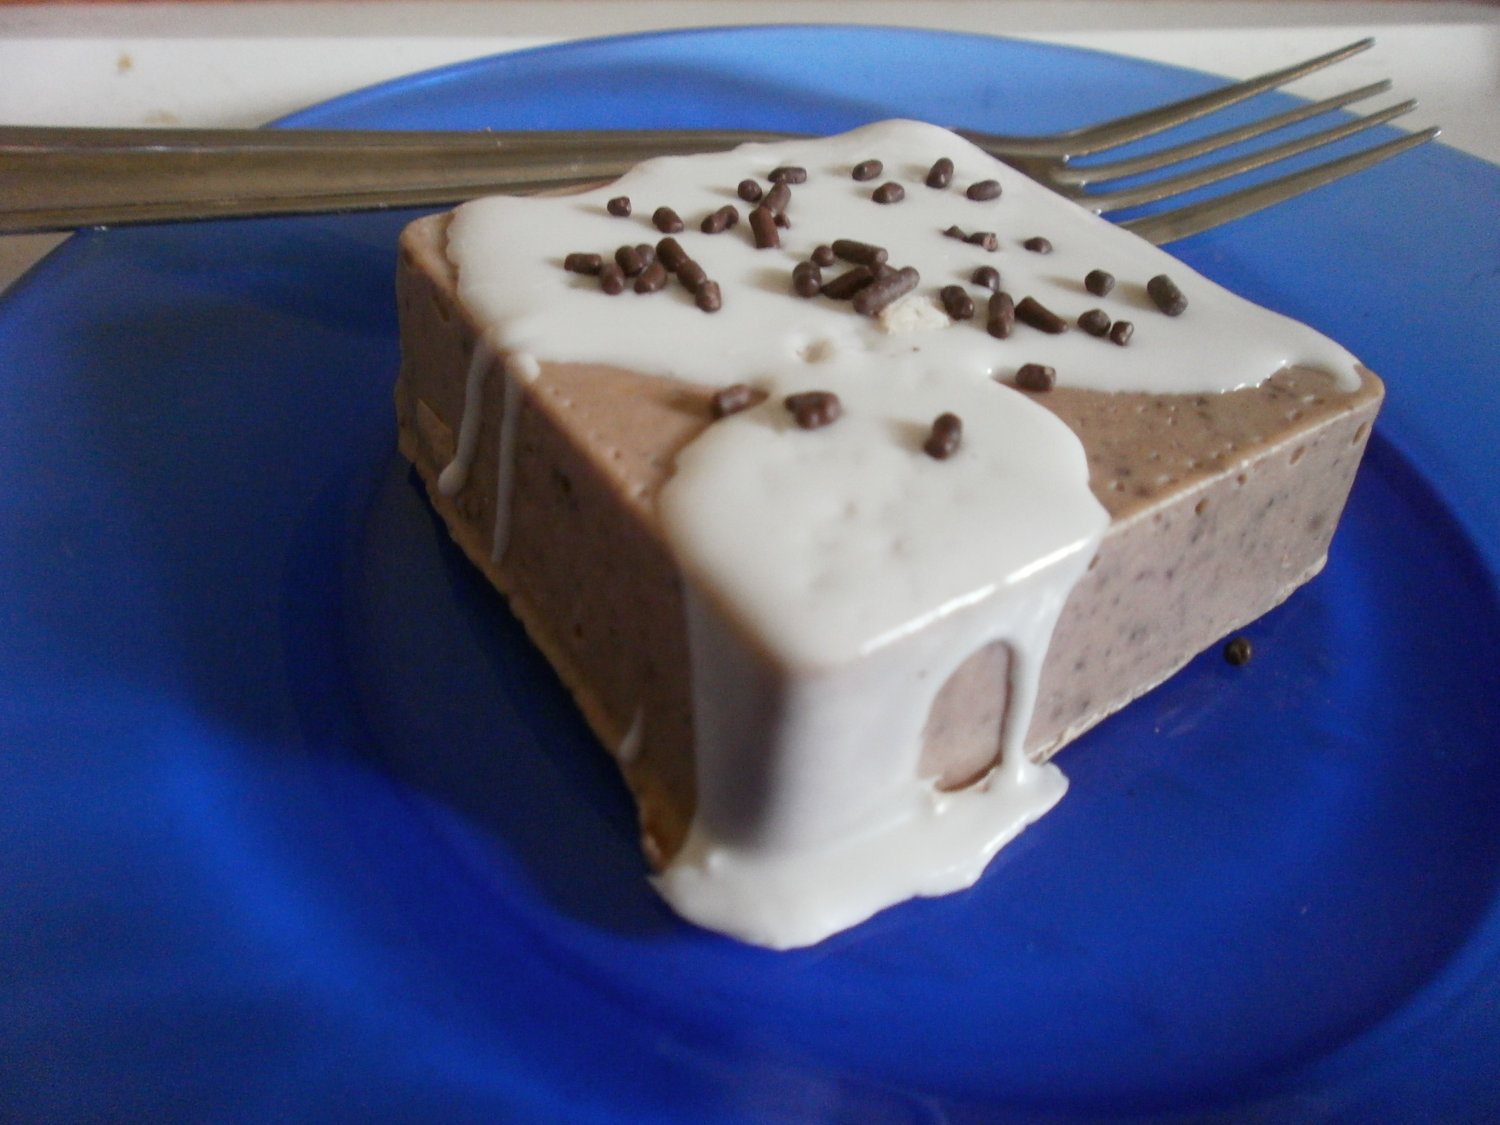 brownie cake soap, health and beauty, soap, dessert soap - $4.25